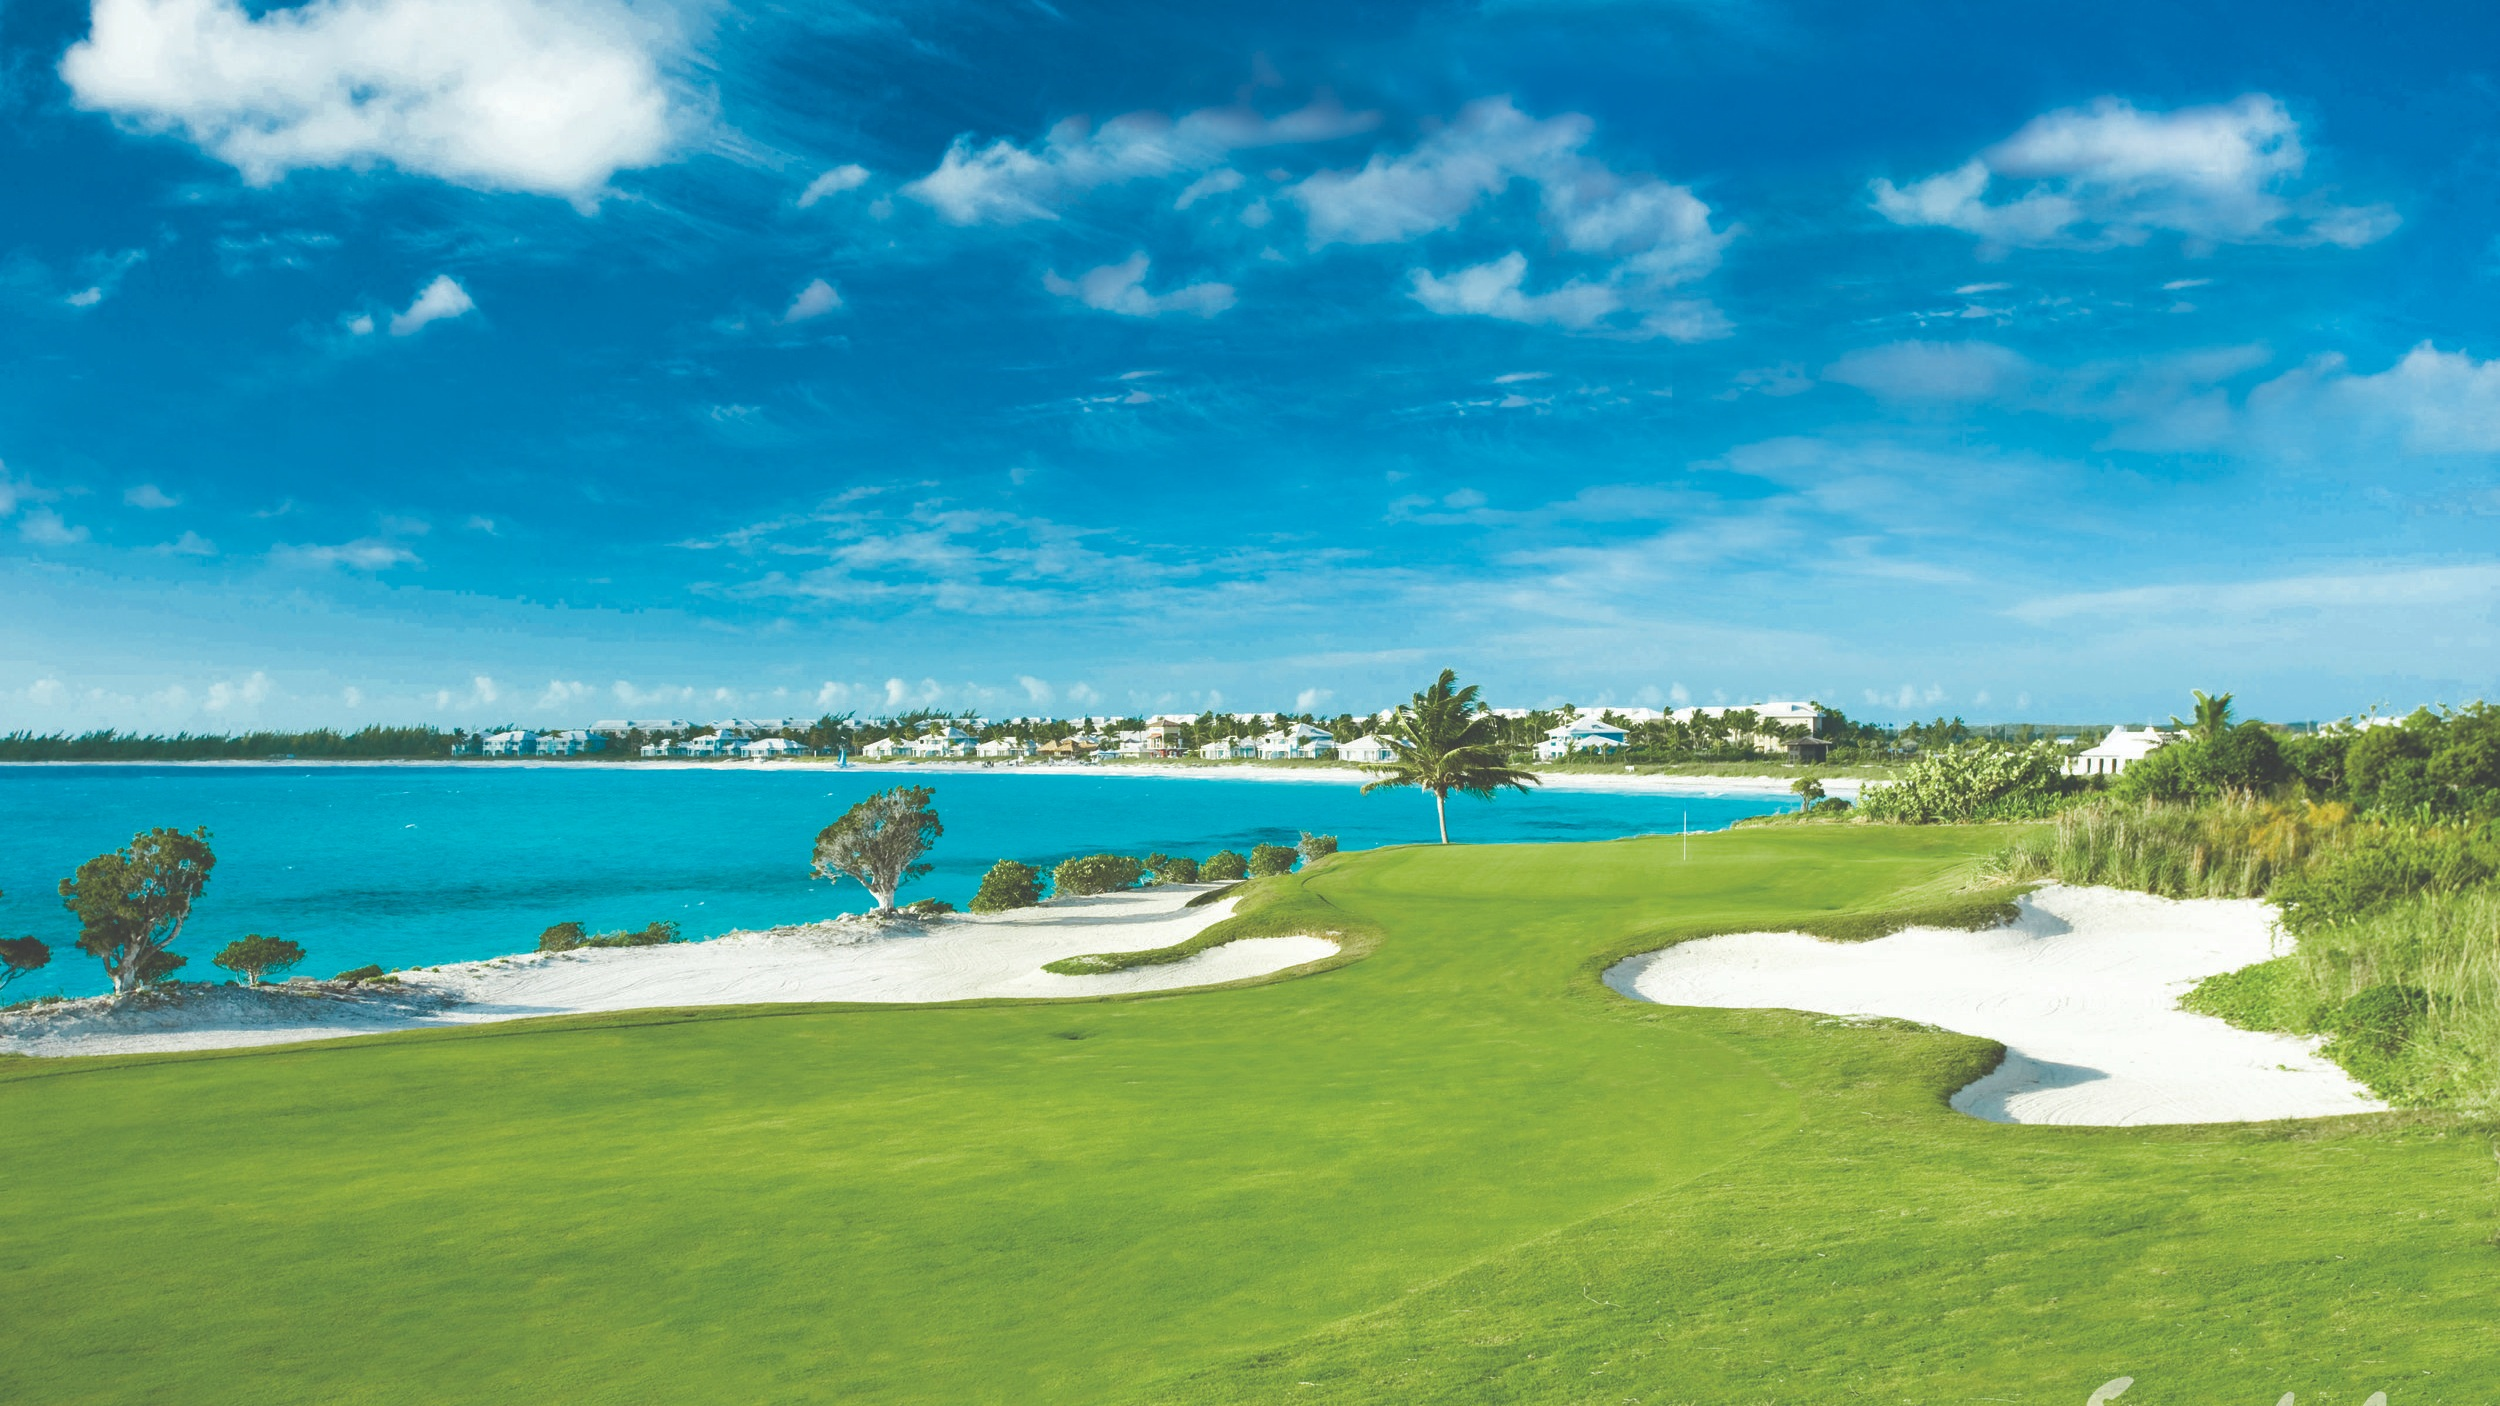 Don't get distracted by the beautiful view… - Play a few rounds on Sandals! Golf courses to match every par! All greens fees are included!